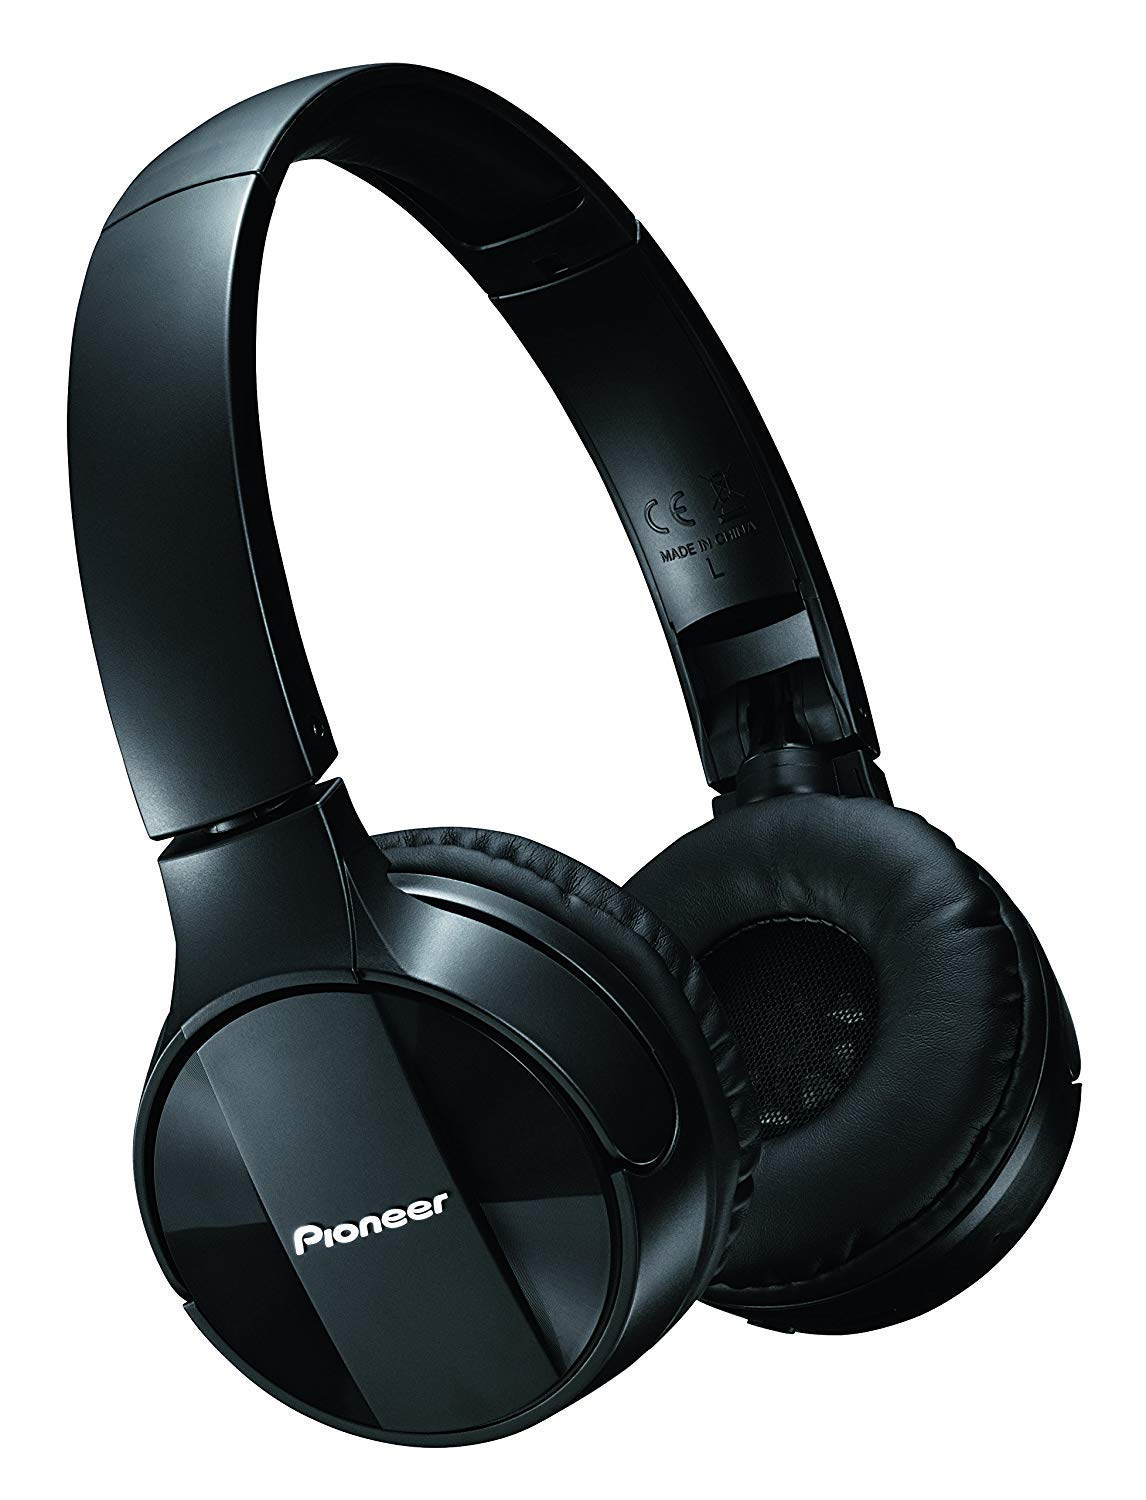 Pioneer Bluetooth Lightweight On Ear Wireless Stereo Headphones, Black SE-MJ553BT(K) (Renewed)